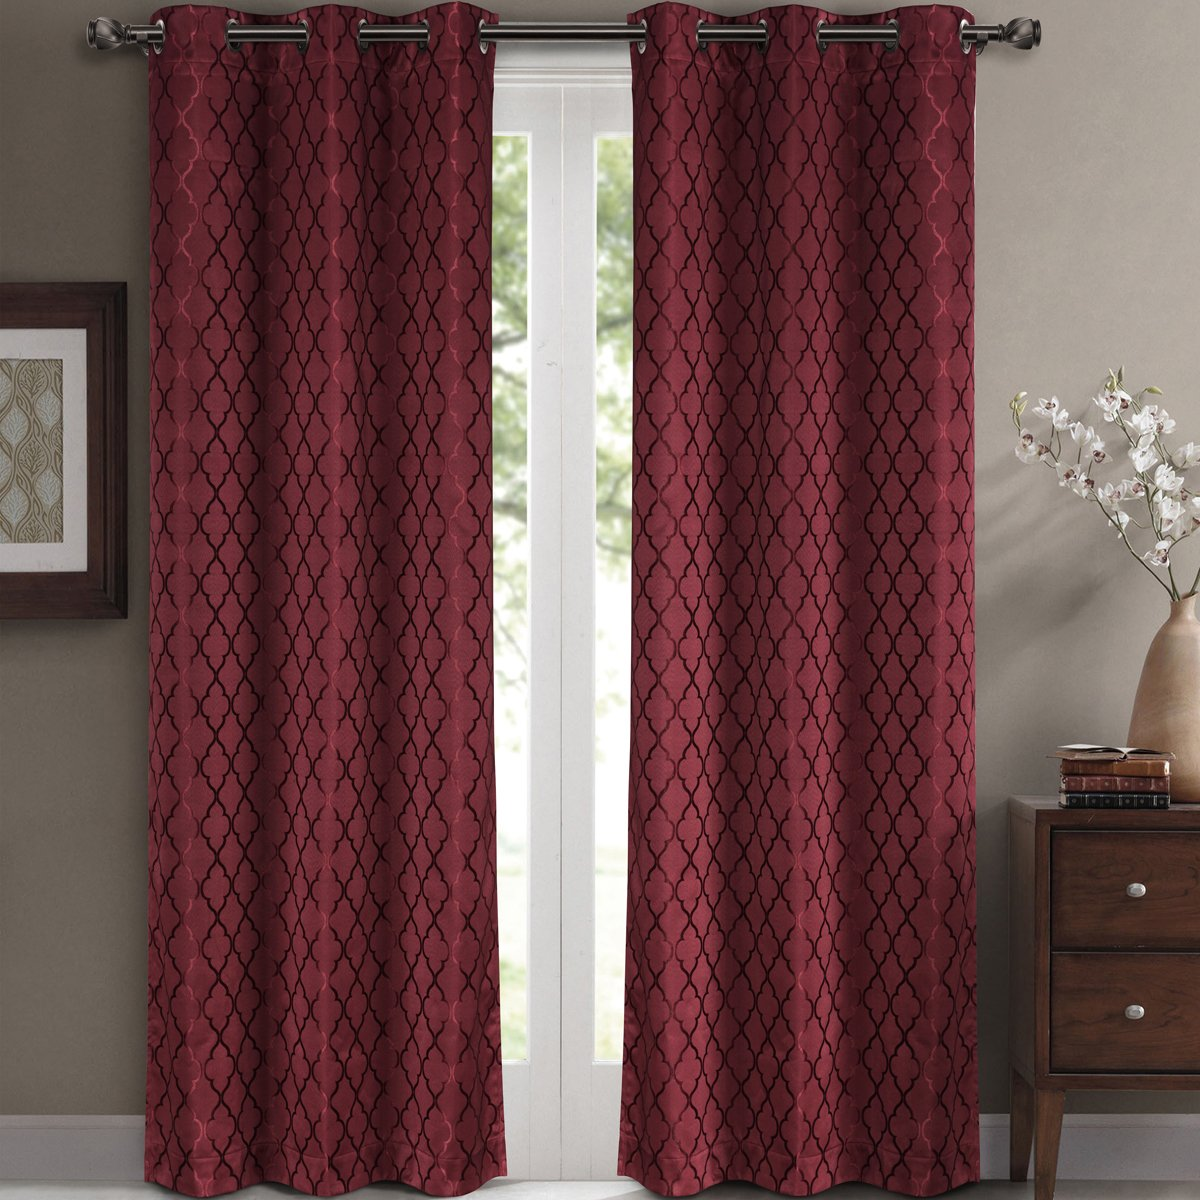 Amazon Willow Jacquard White Grommet Blackout Window Curtain Panels Pair Set Of 2 42x96 Inches Each By Royal Hotel Home Kitchen